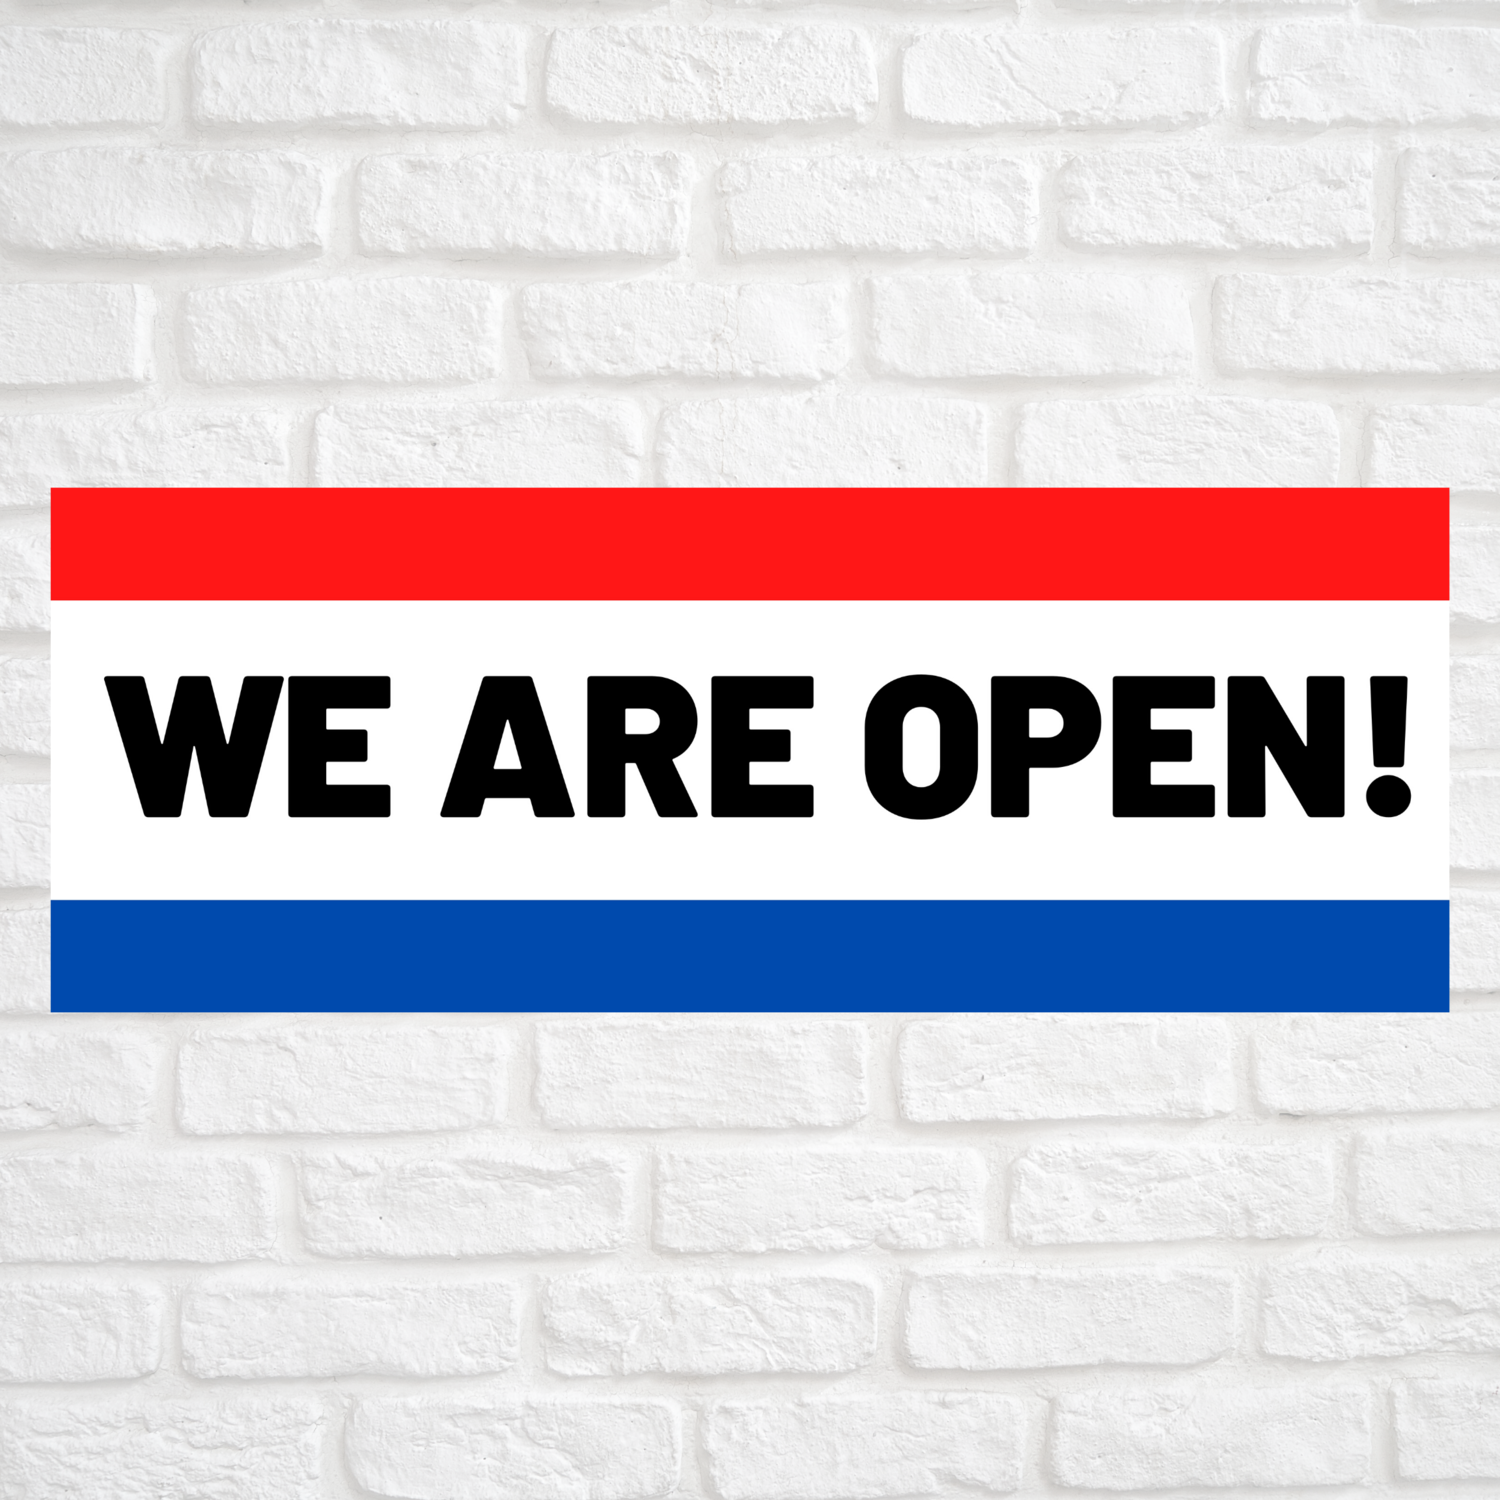 We Are Open! Red/Blue